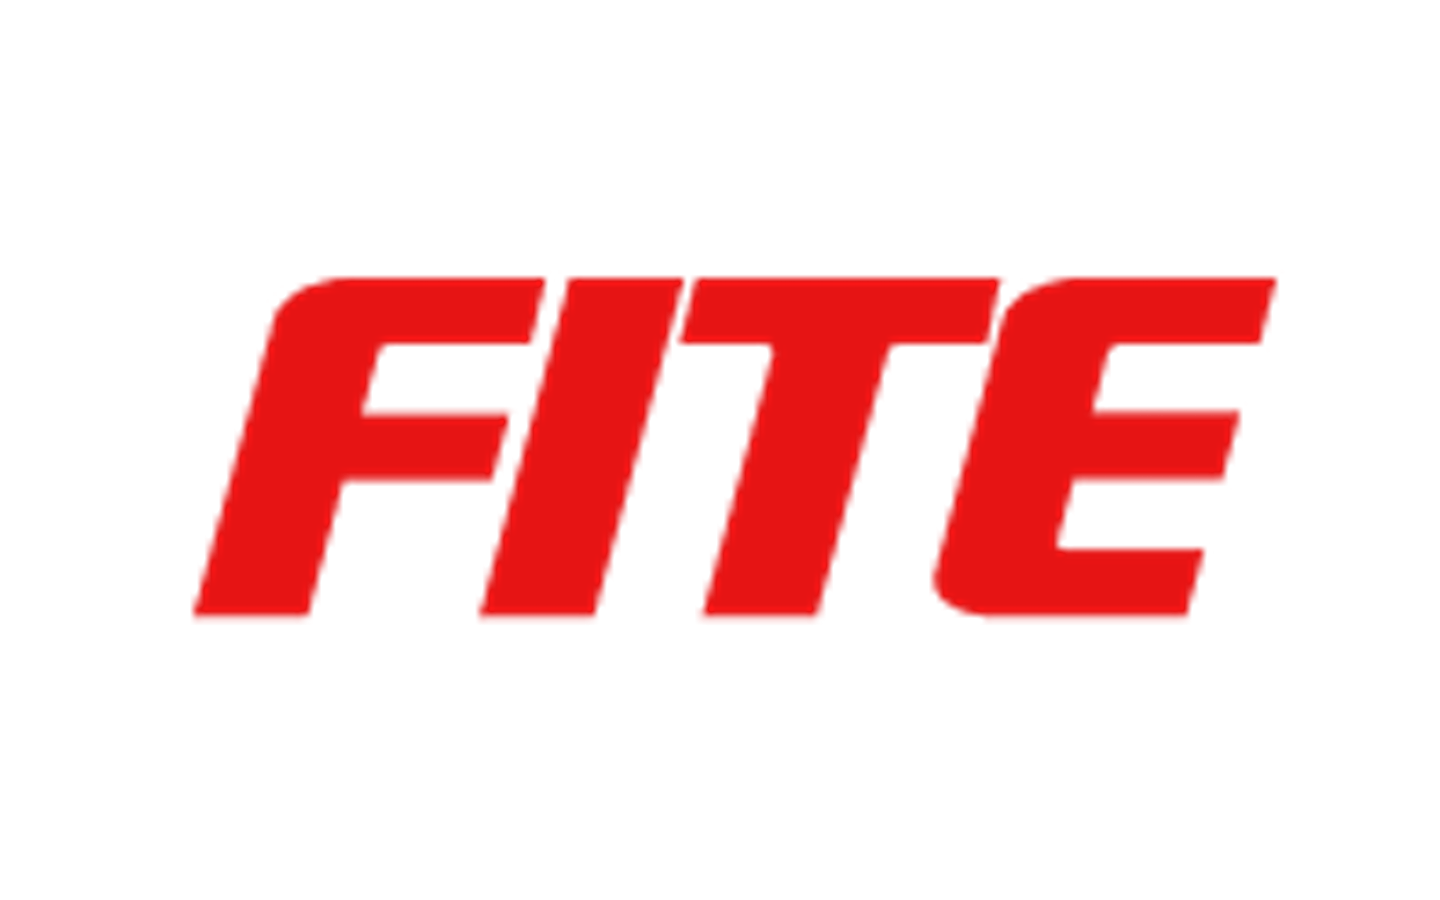 fite_logo.png